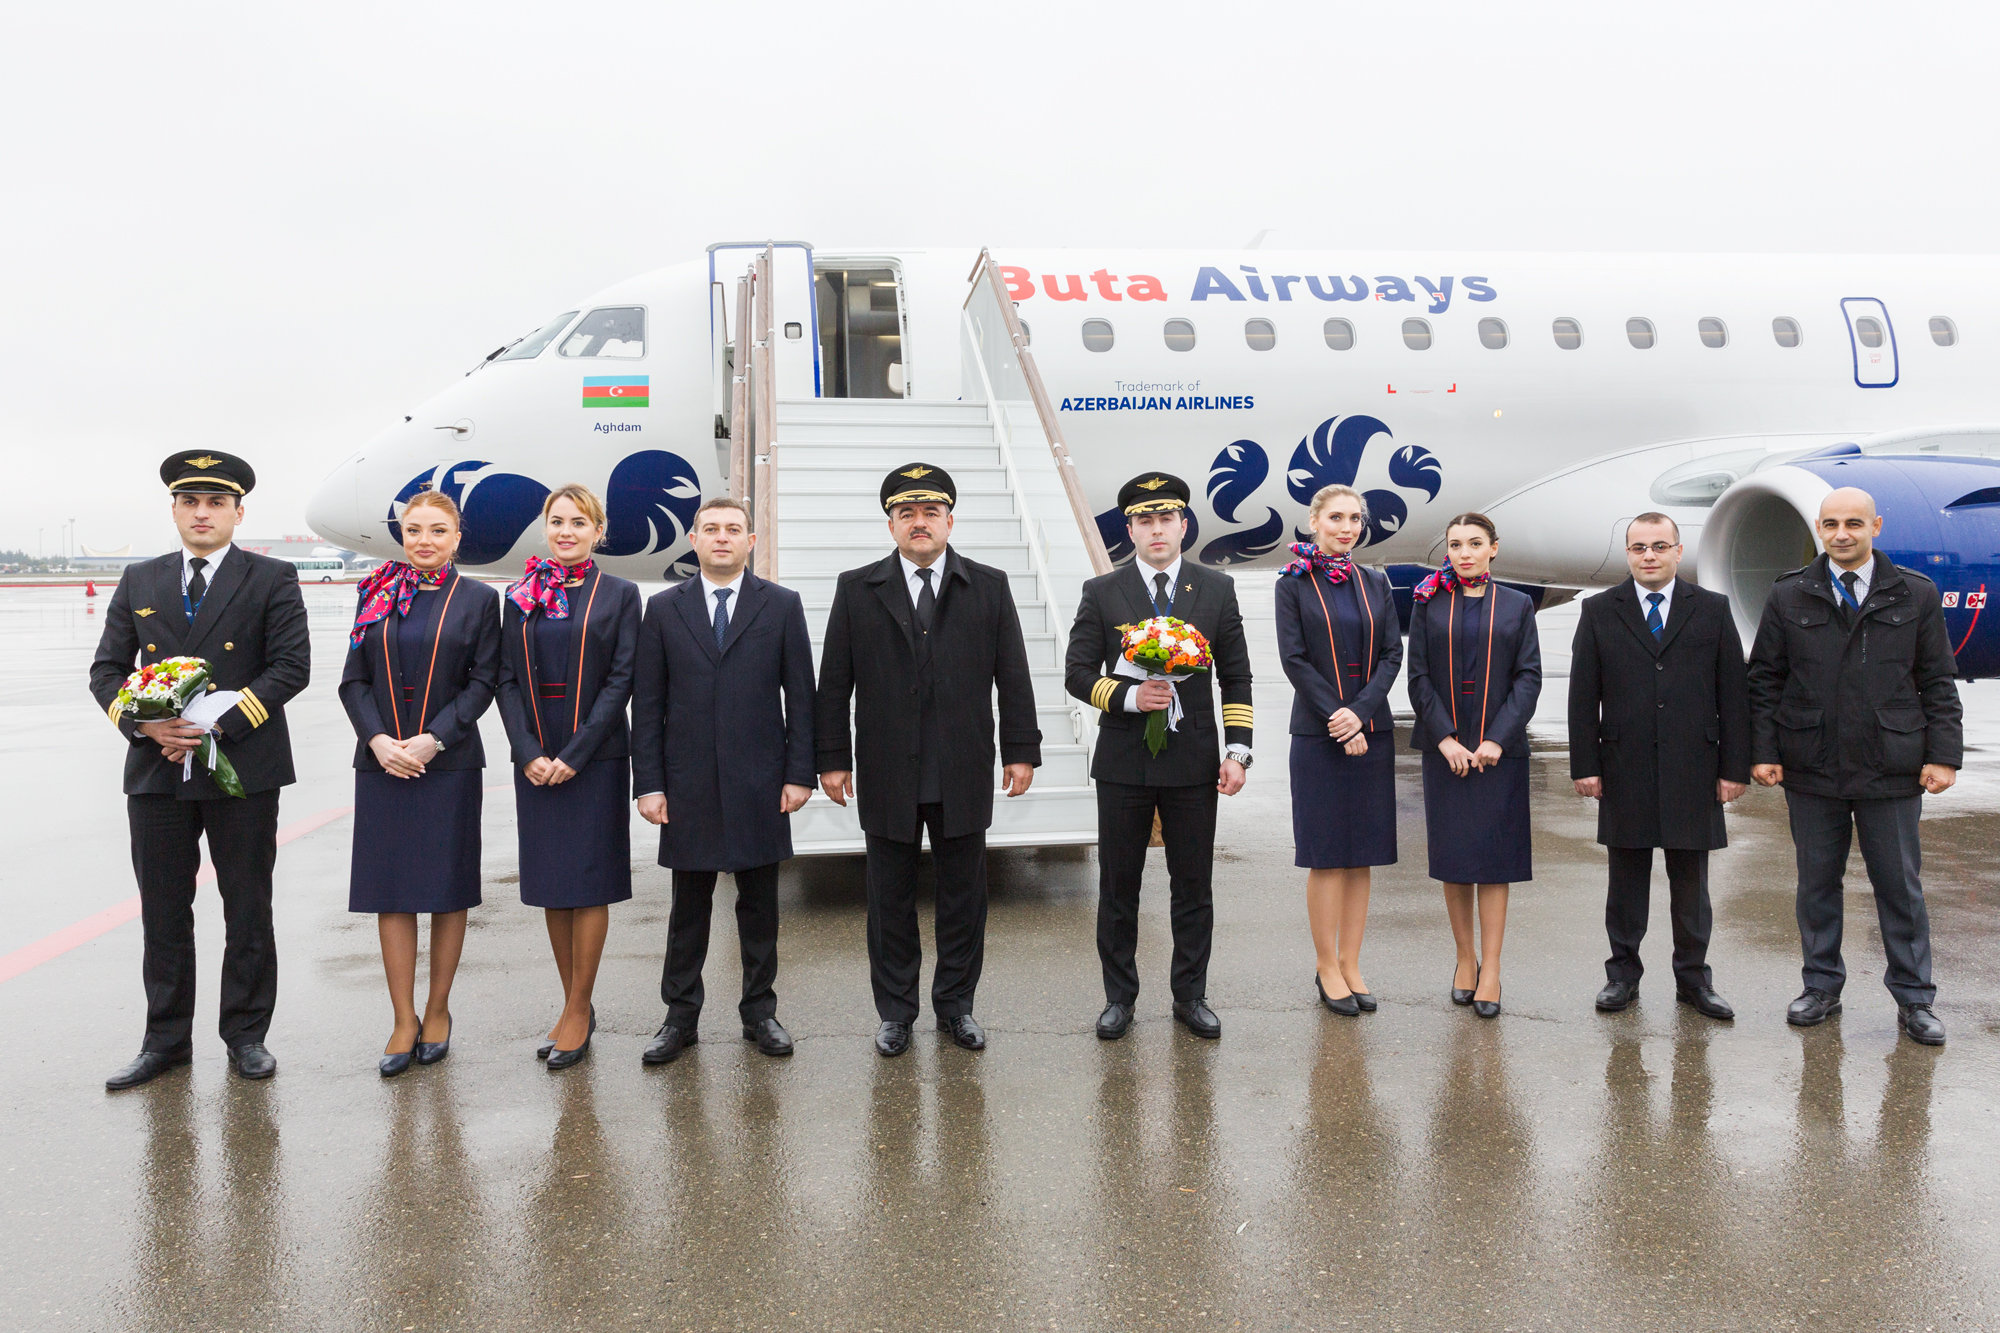 ButaAirways has launched a plane from Brazil